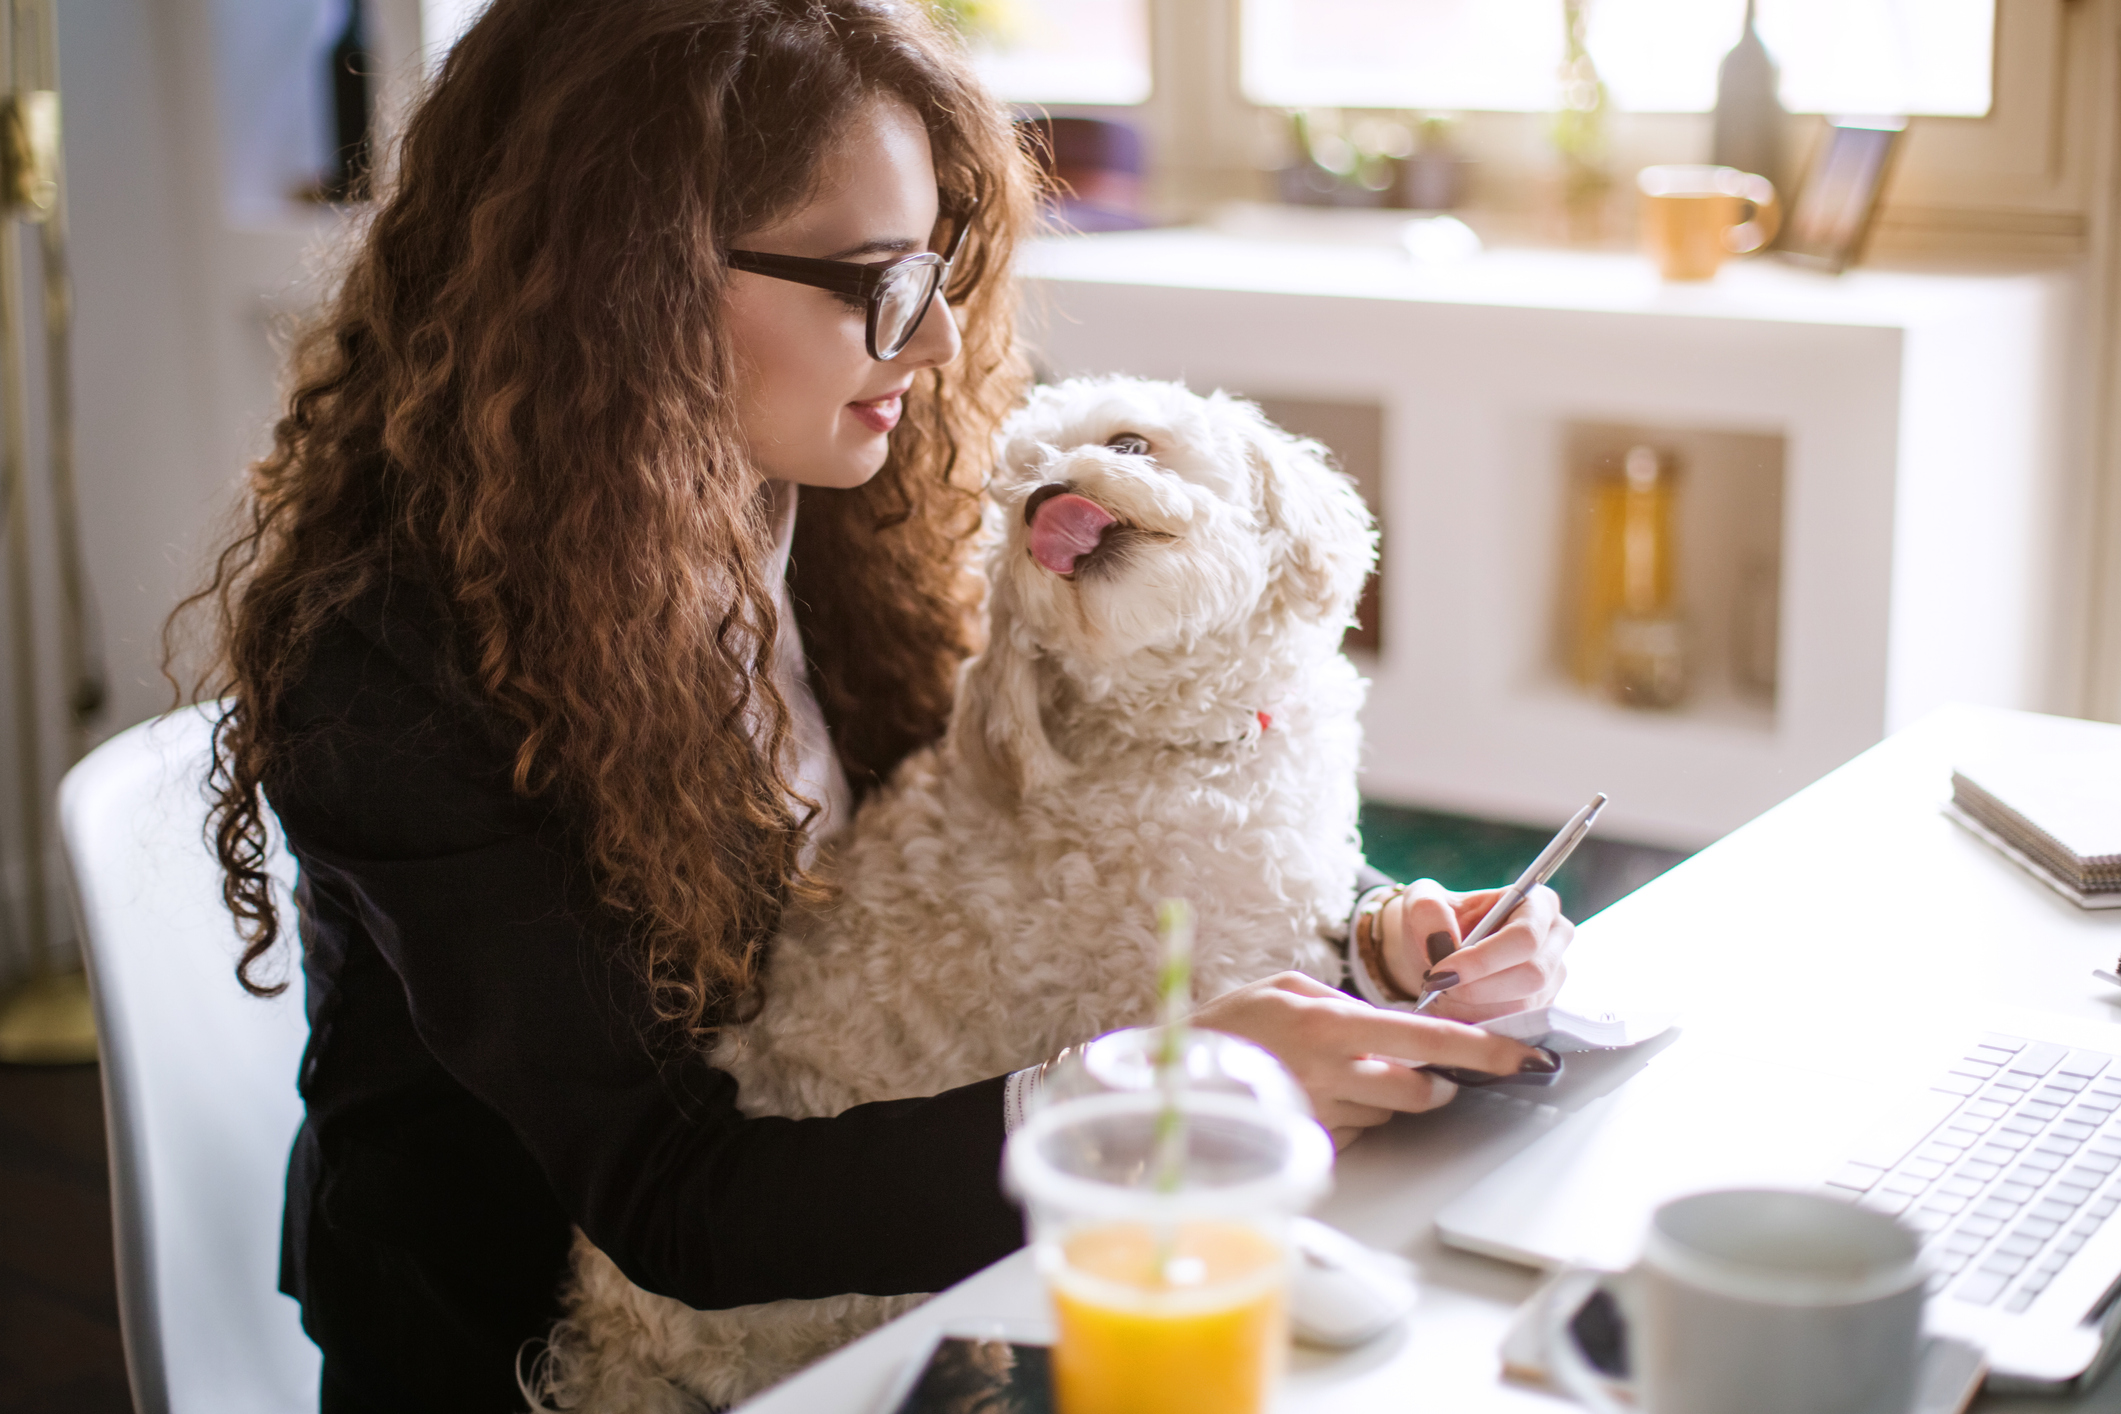 working and holding her dog in her lap.